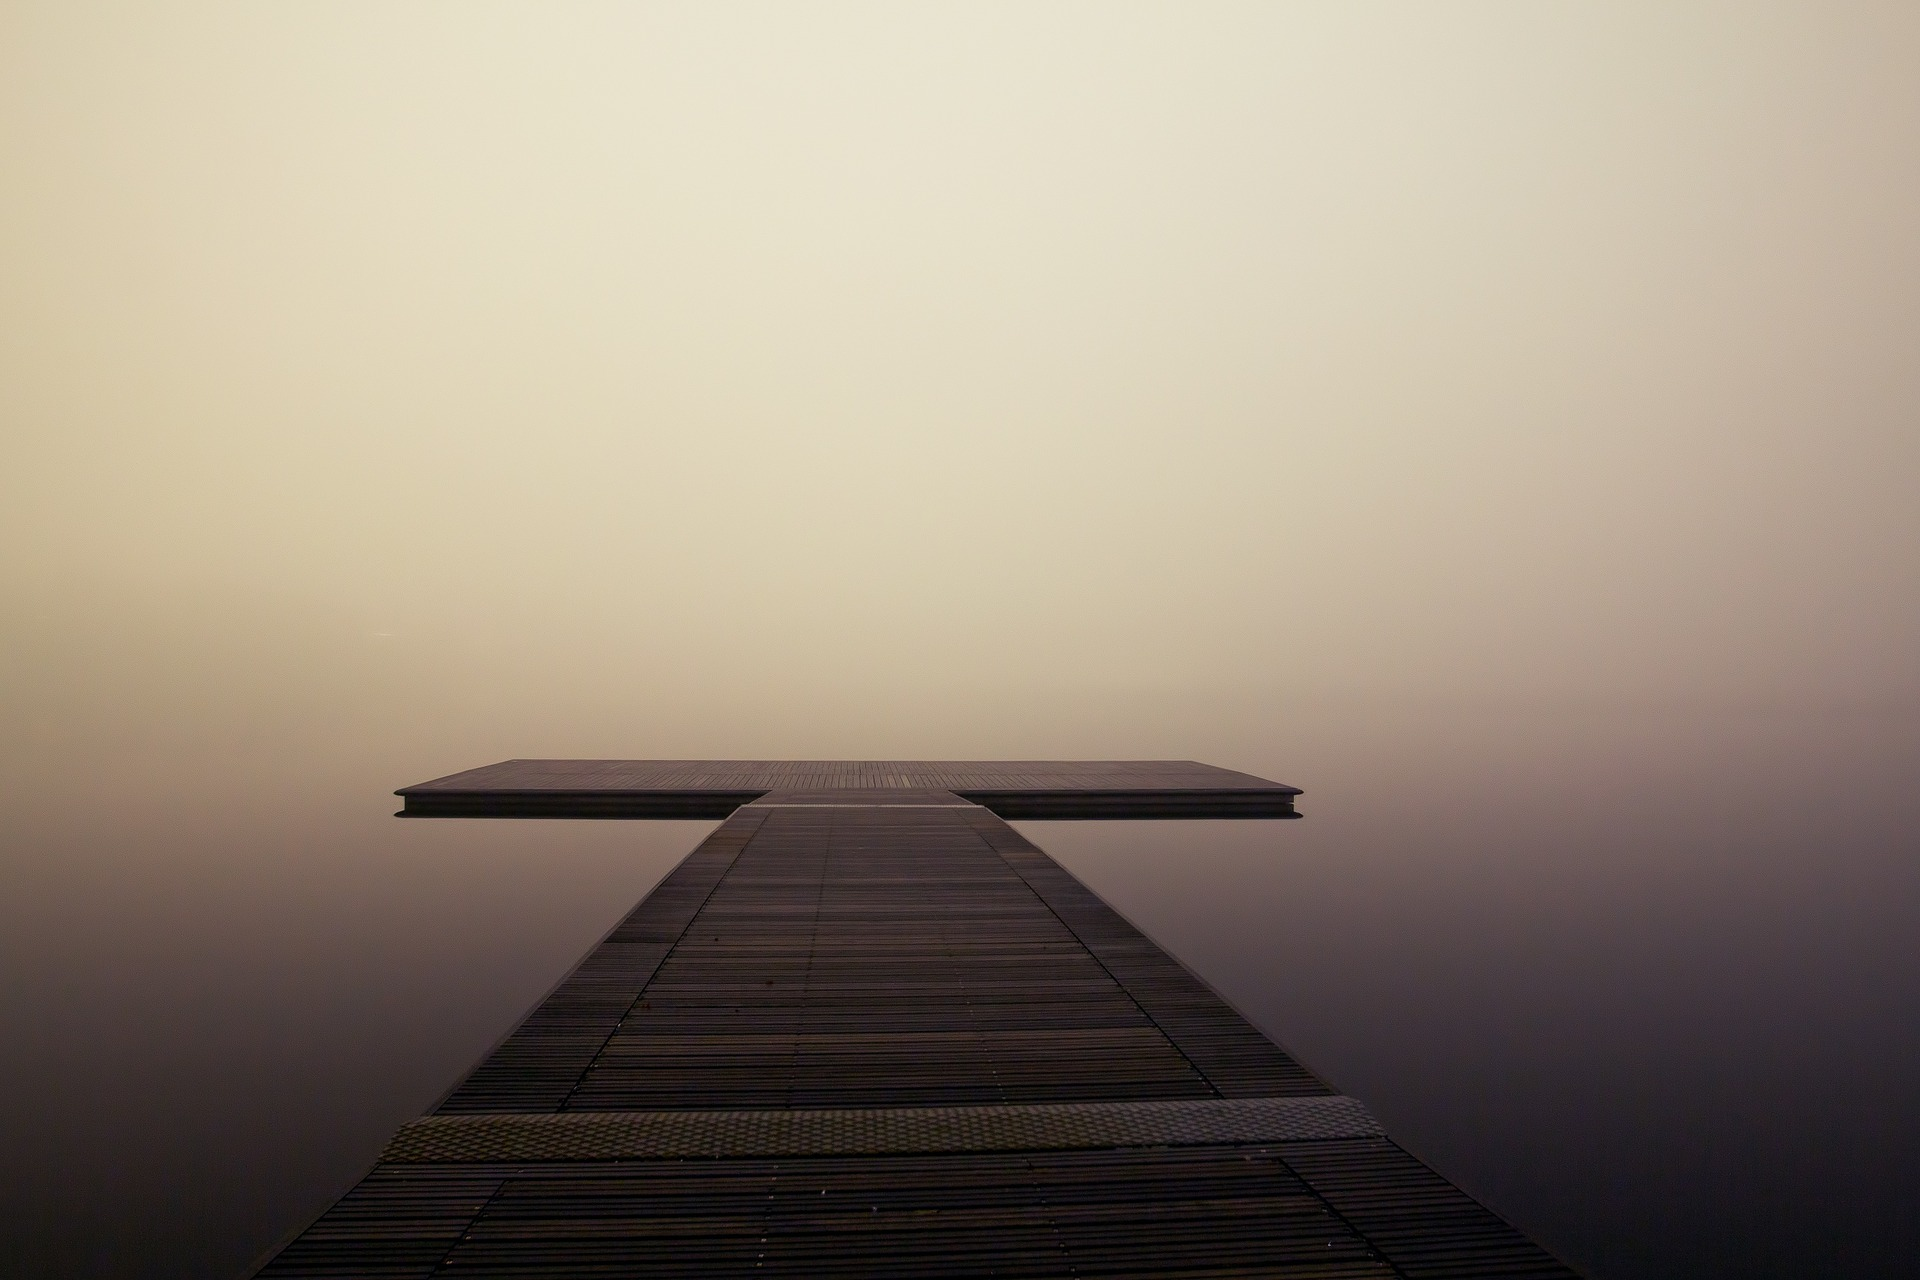 to get CLARITY - you come. sit. and think until it becomes clear